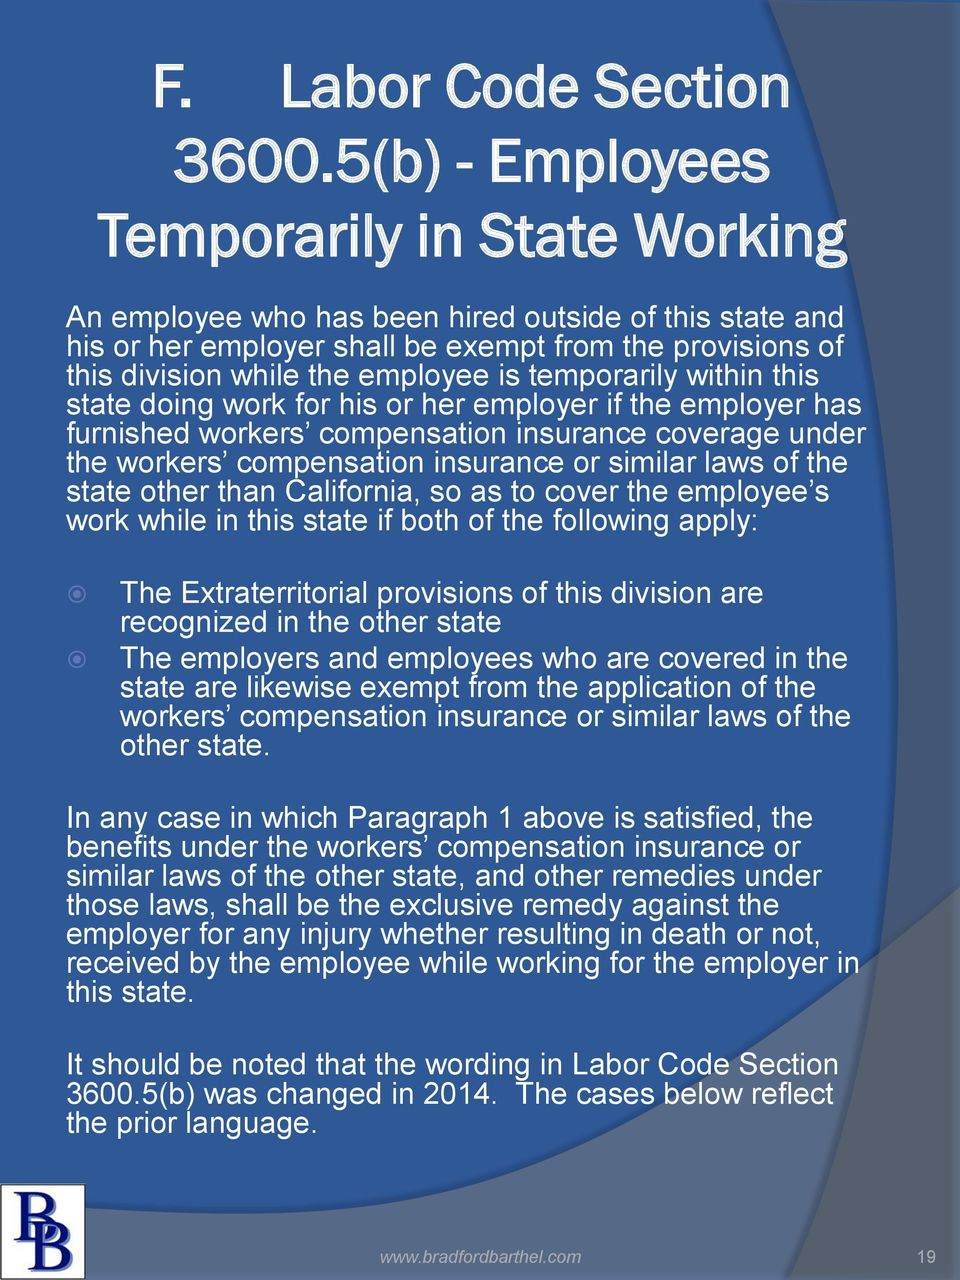 temporarily within this state doing work for his or her employer if the employer has furnished workers compensation insurance coverage under the workers compensation insurance or similar laws of the